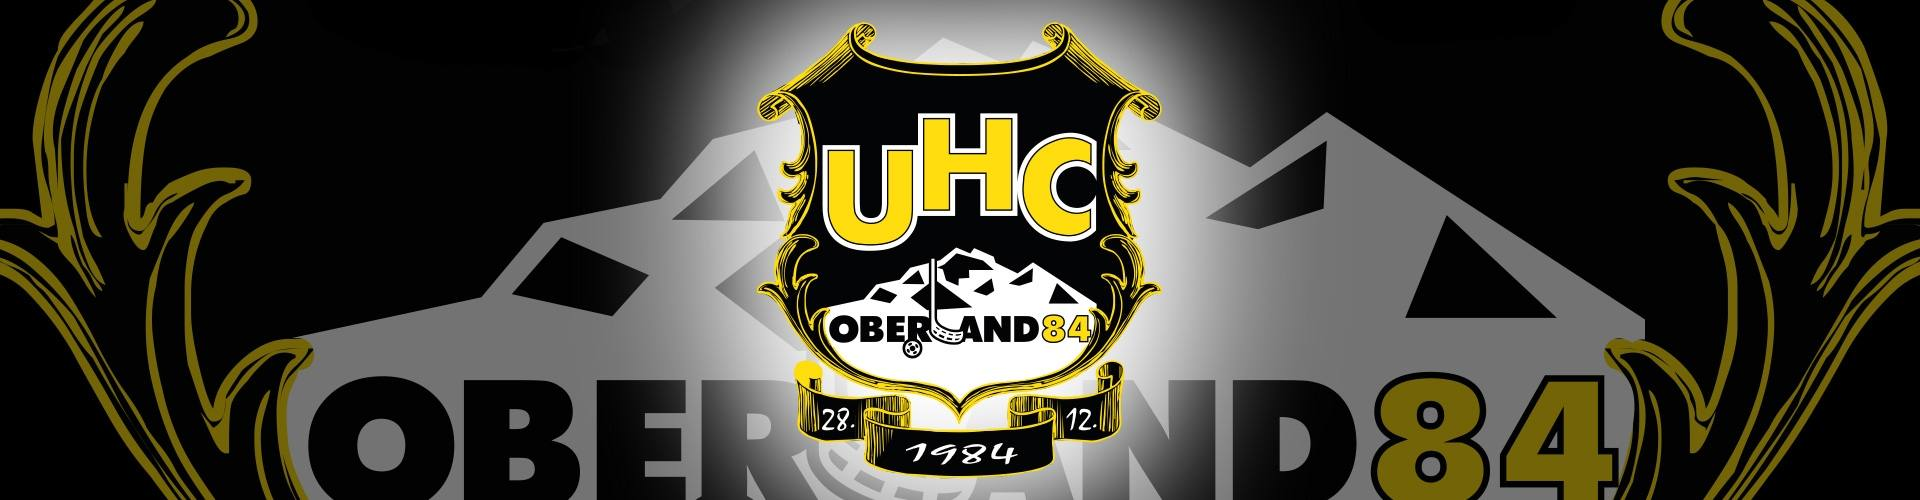 UHC Oberland 84 Interlaken